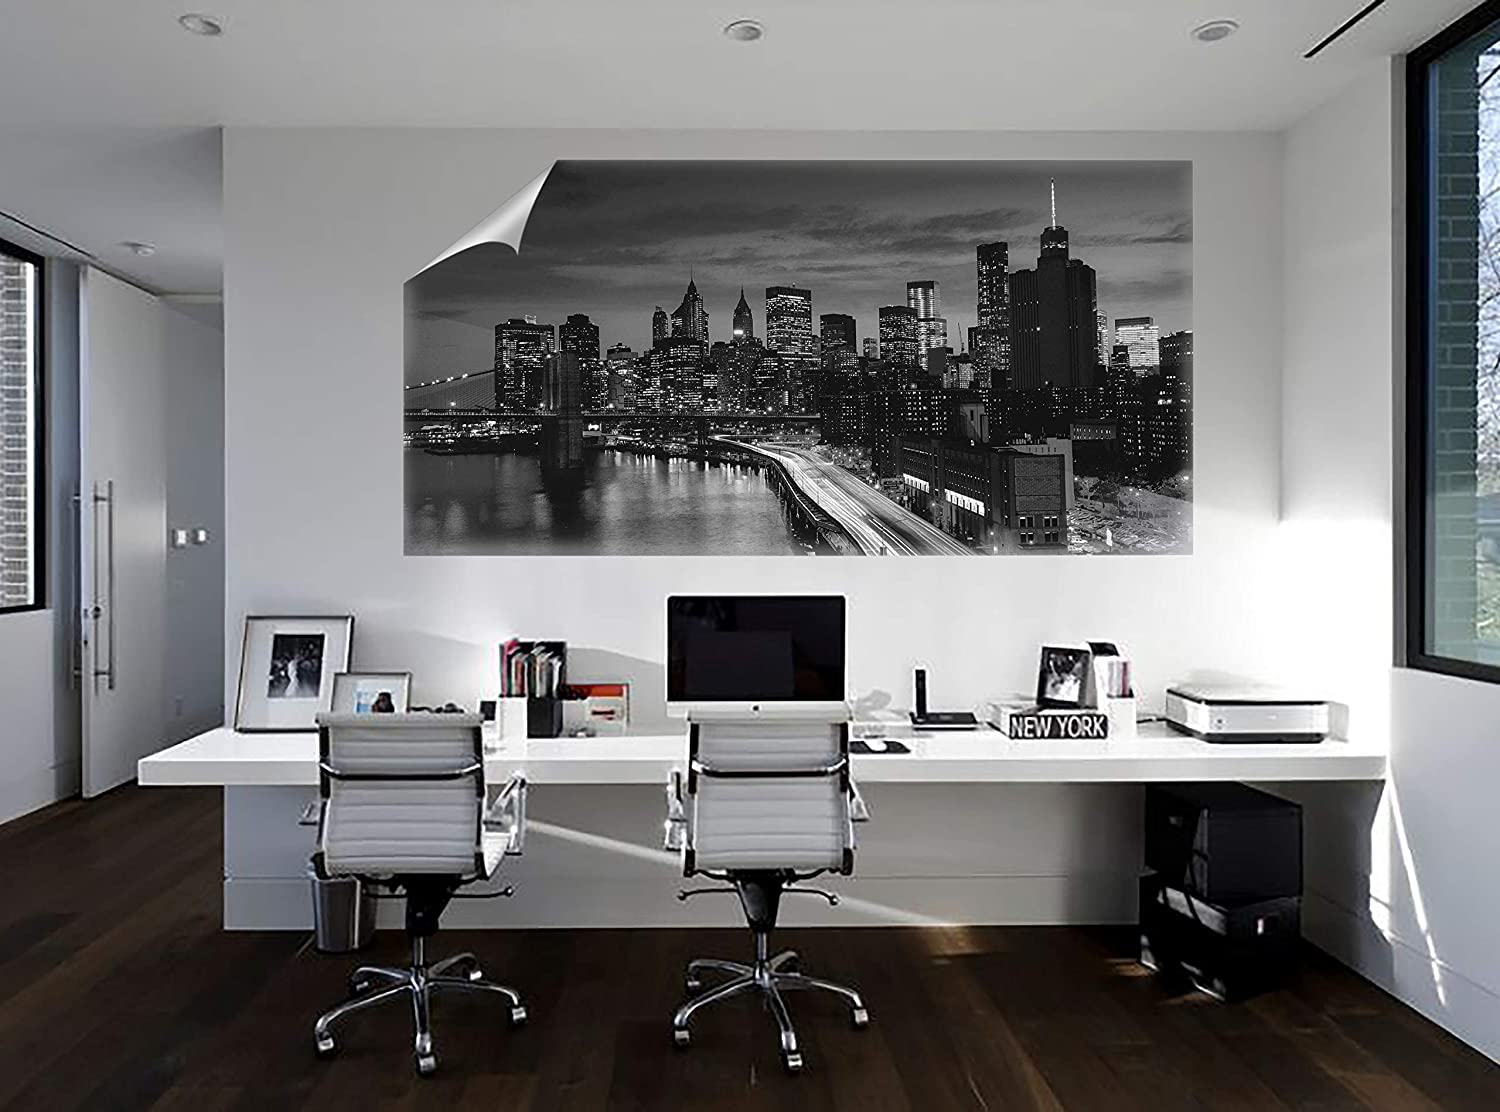 Amazon Com Custom Canvas Wall Mural Graphics Make Your Own Wall Art For Living Room Home Decor Easy To Paste Or Remove No Glue Residue 58x110 Inch Home Kitchen